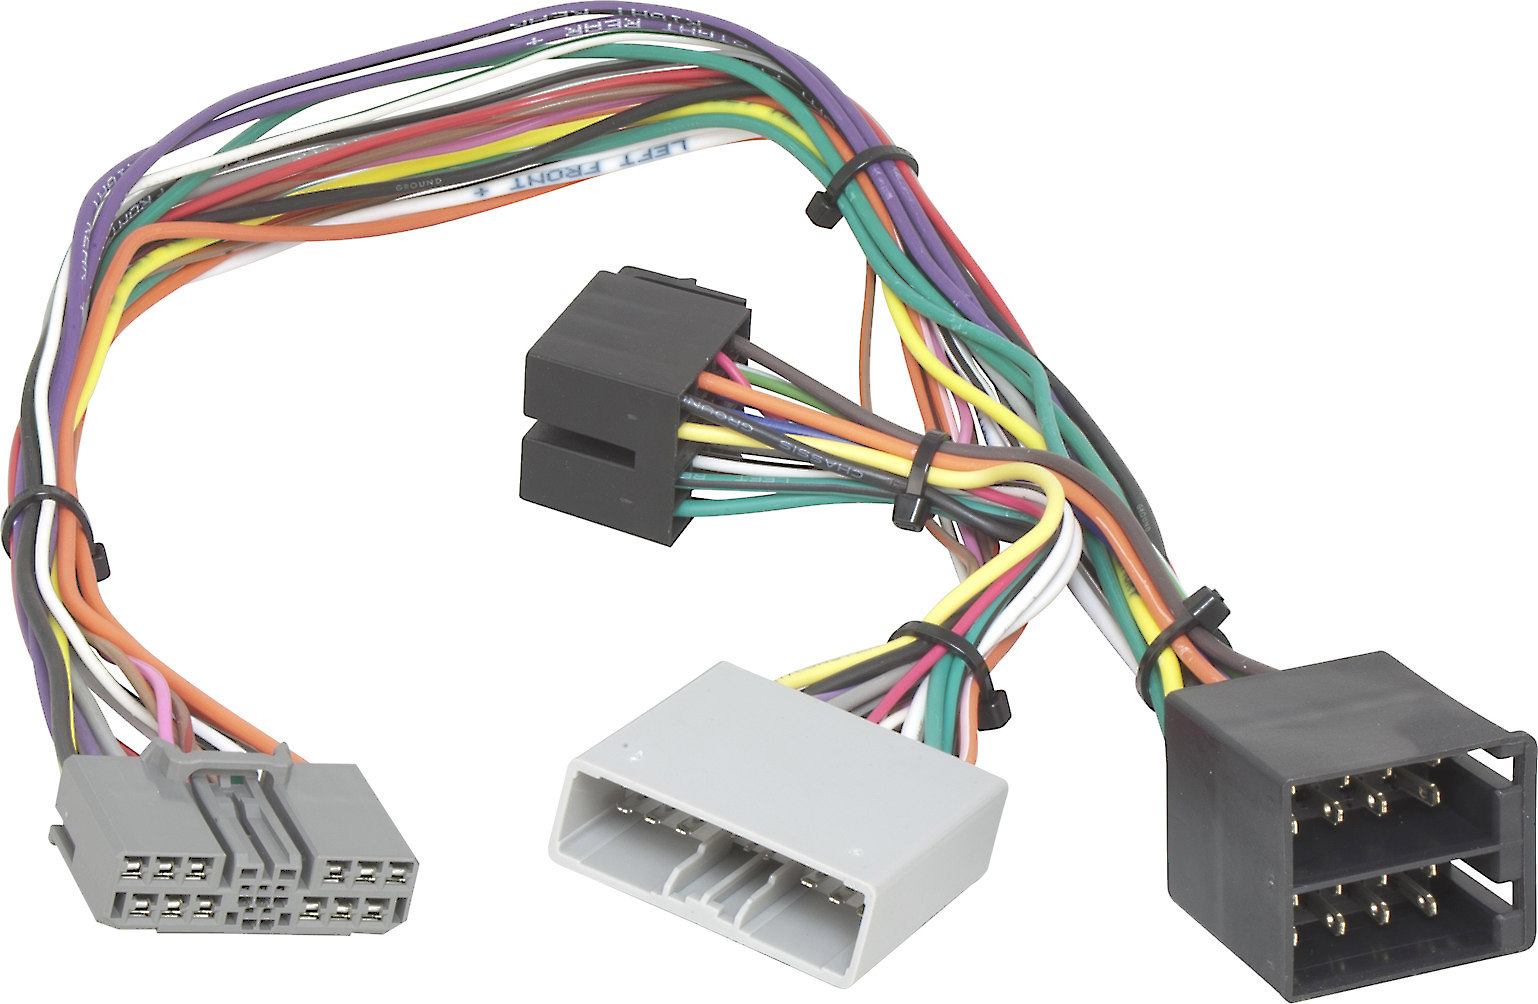 hight resolution of honda bluetooth wiring harness connects parrot bluetooth cell phone kits to the factory stereo in select 2006 up honda vehicles at crutchfield com